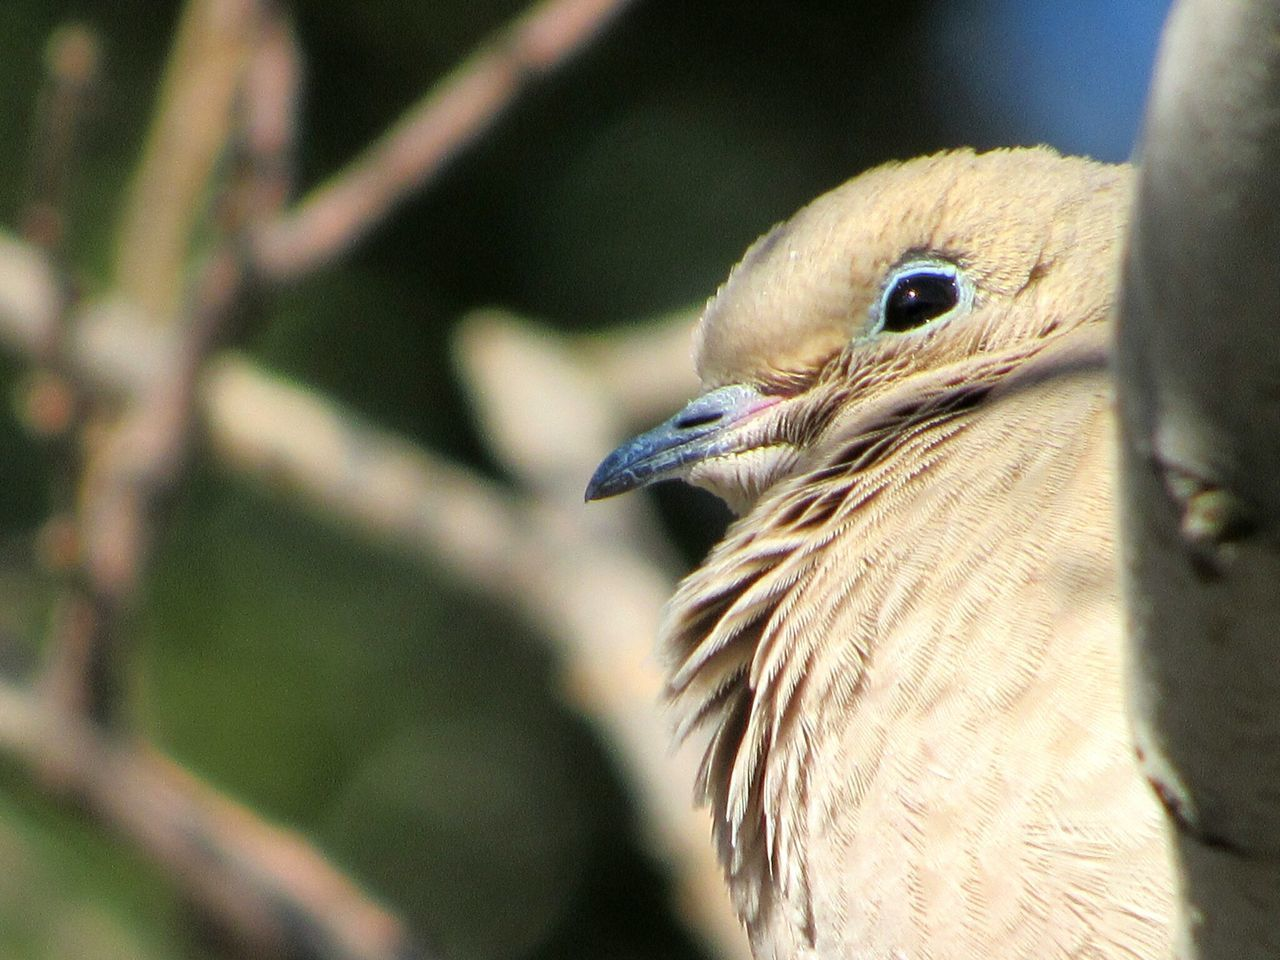 Mourning Dove In Tree Bird One Animal Animal Themes Animals In The Wild Animal Wildlife Close-up Outdoors Animal Body Part No People Day Beak Nature Branches And Sky